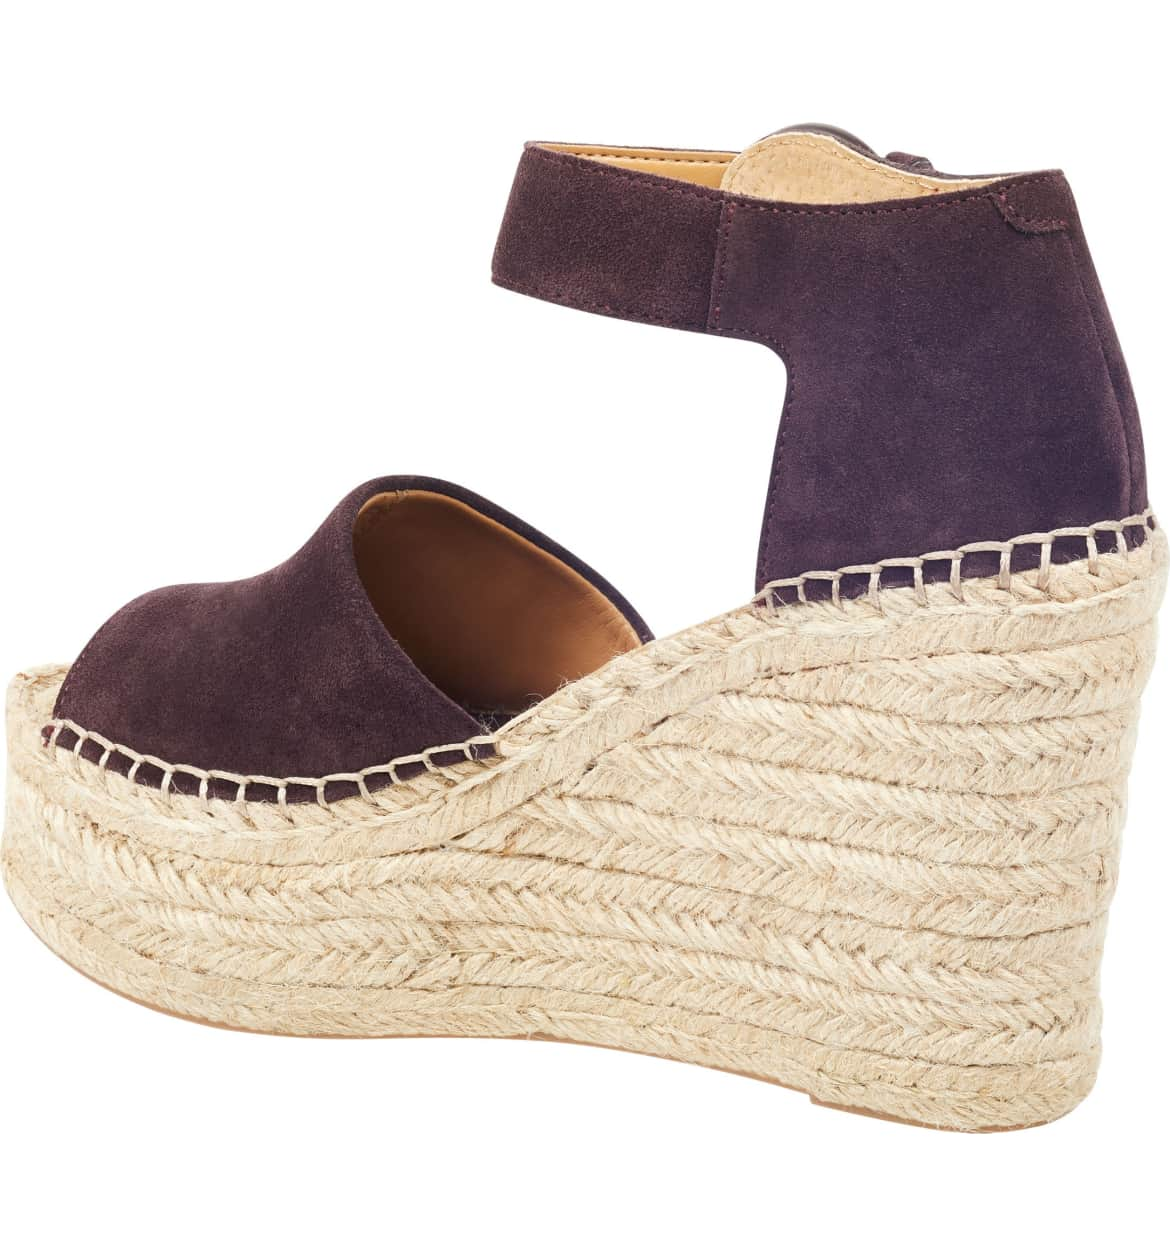 050f9db48a9 MARC FISHER LTD Alida Platform Wedge Espadrille – CUTE SHOE SHOP